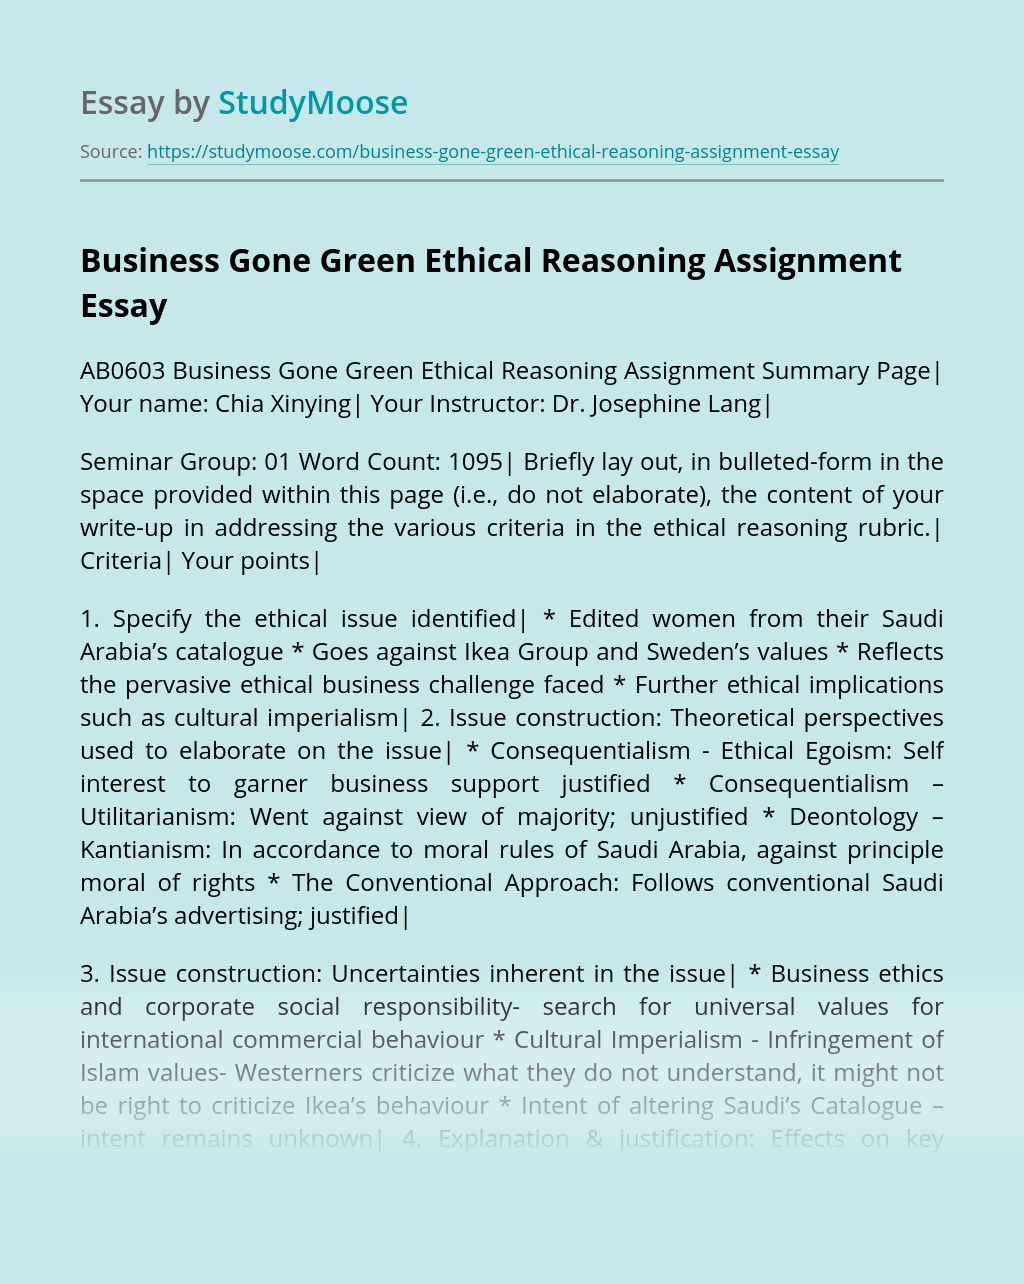 Business Gone Green Ethical Reasoning Assignment